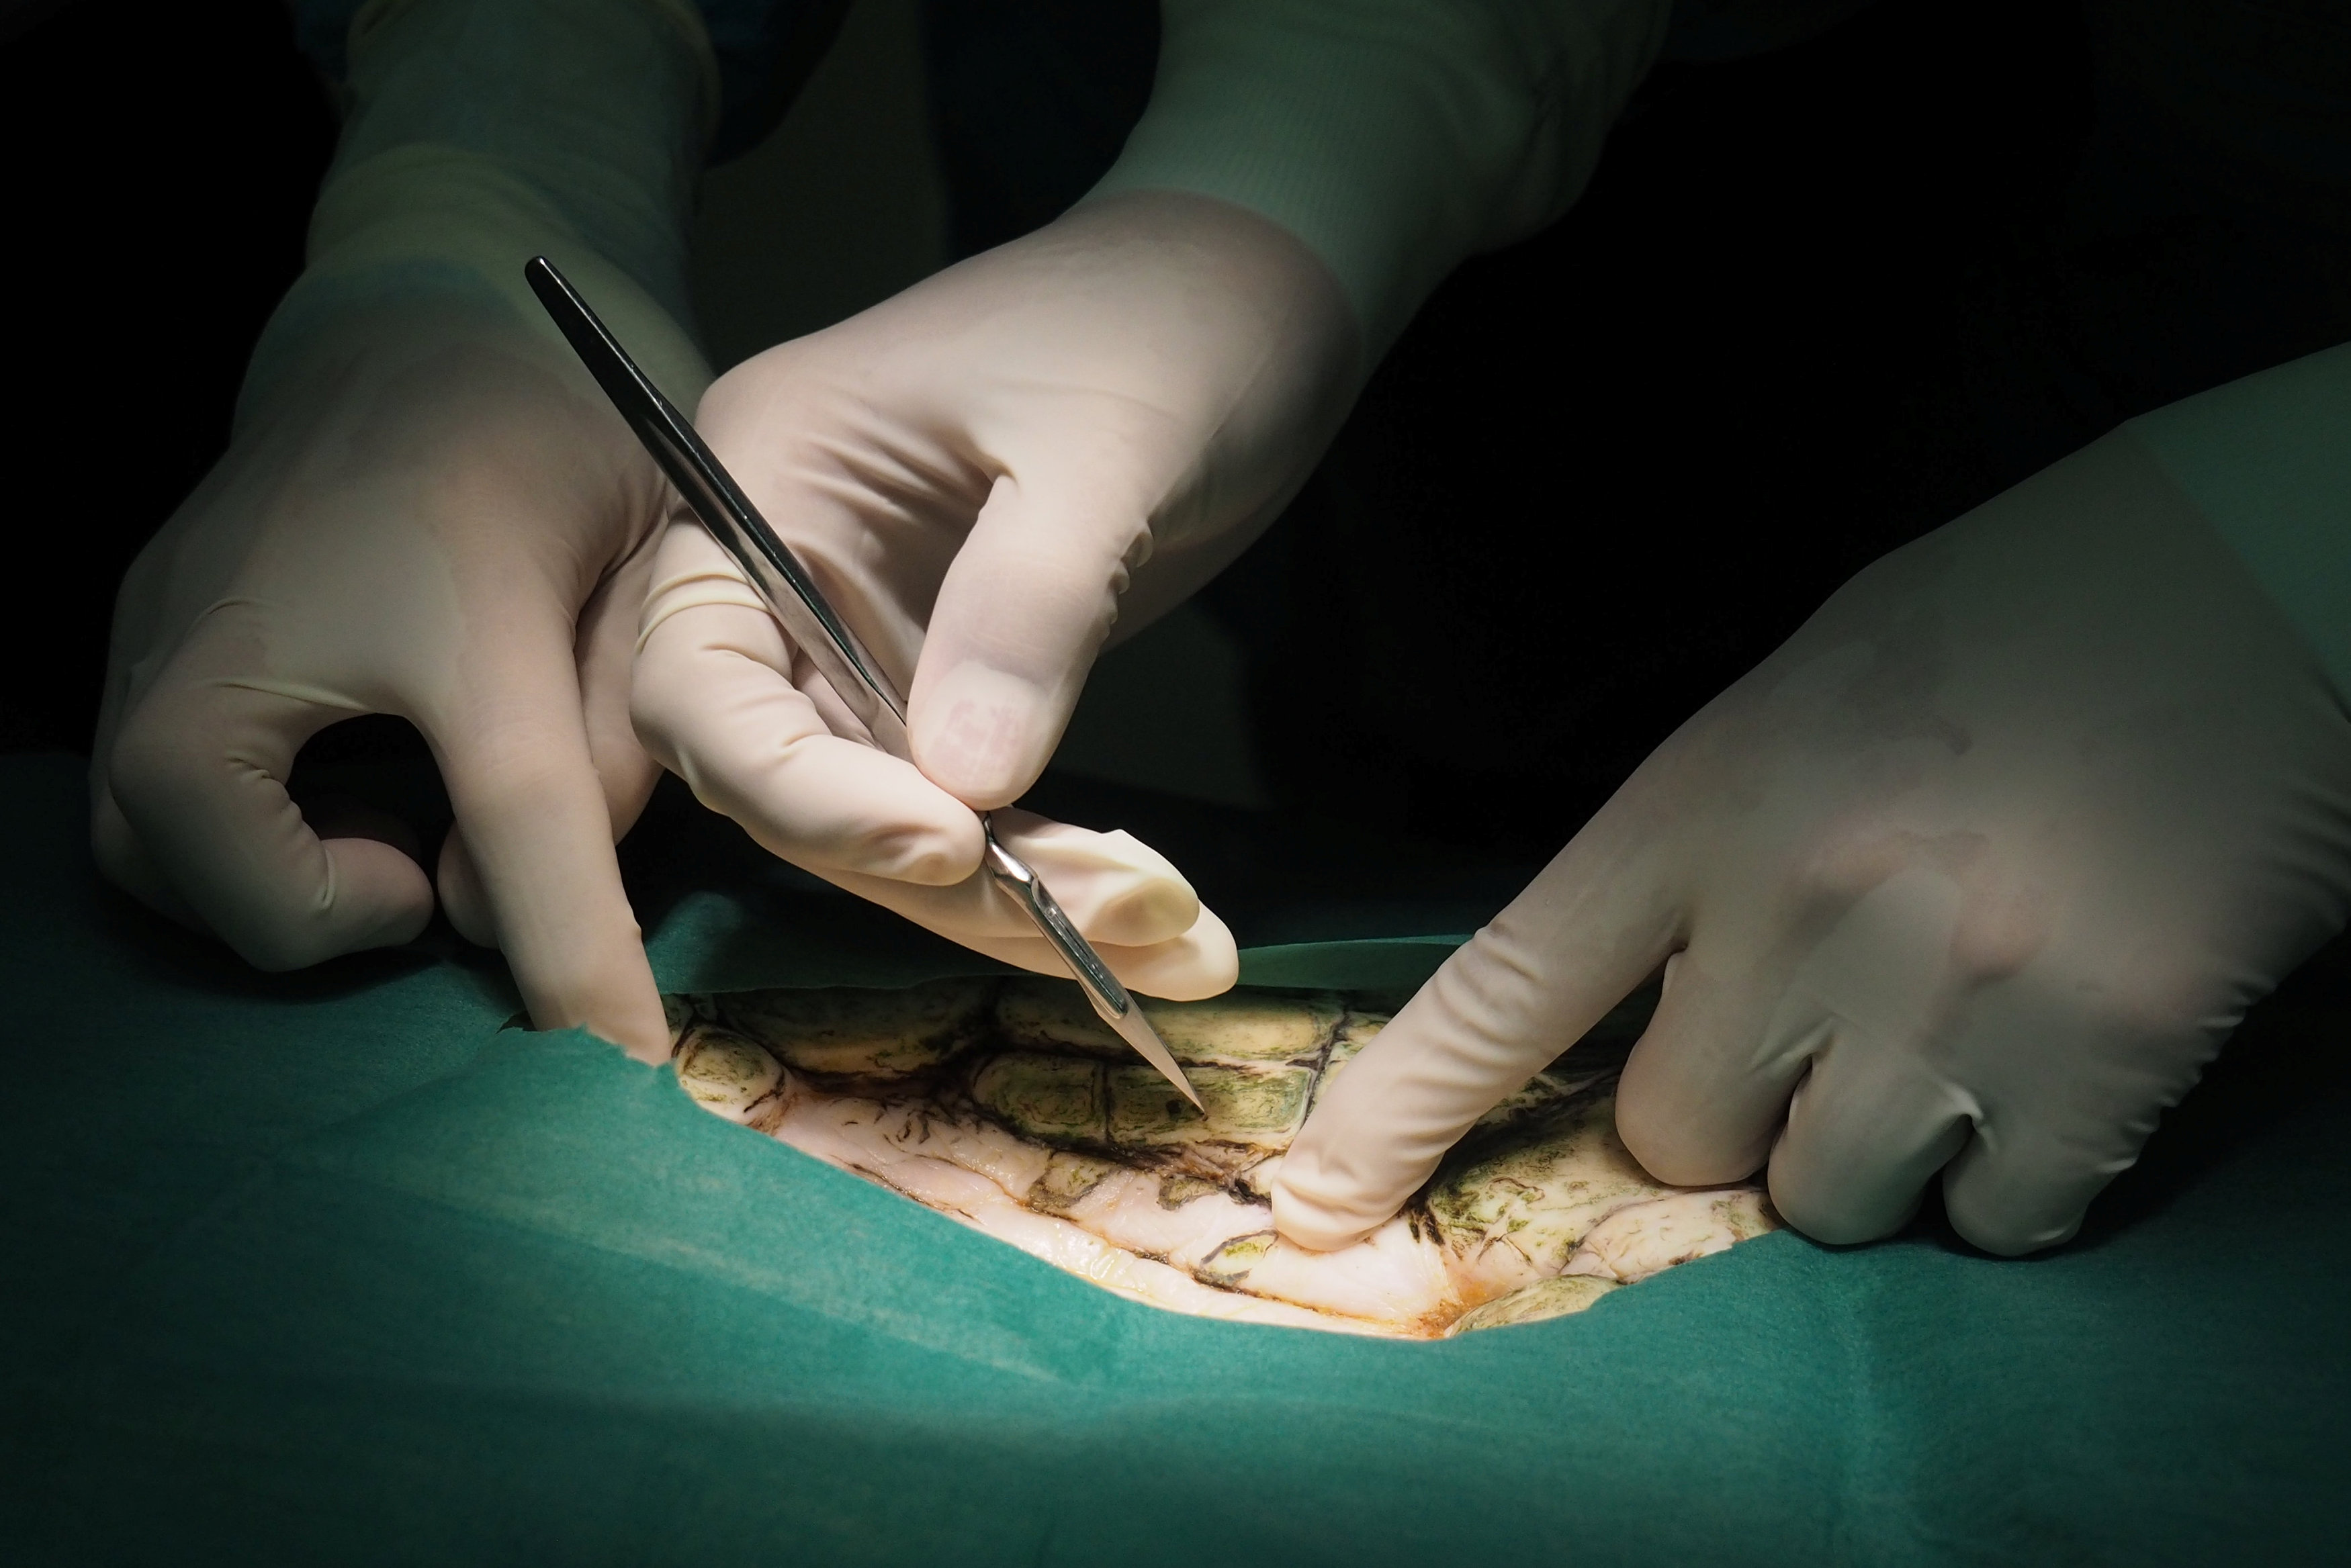 Thai veterinarians operate on Omsin, a 25 year old femal green sea turtle, to remove coins from her stomach at the Faculty of Veterinary Science, Chulalongkorn University in Bangkok, Thailand March 6, 2017. The Faculty of Veterinary Science, Chulalongkorn University/Handout via REUTERS